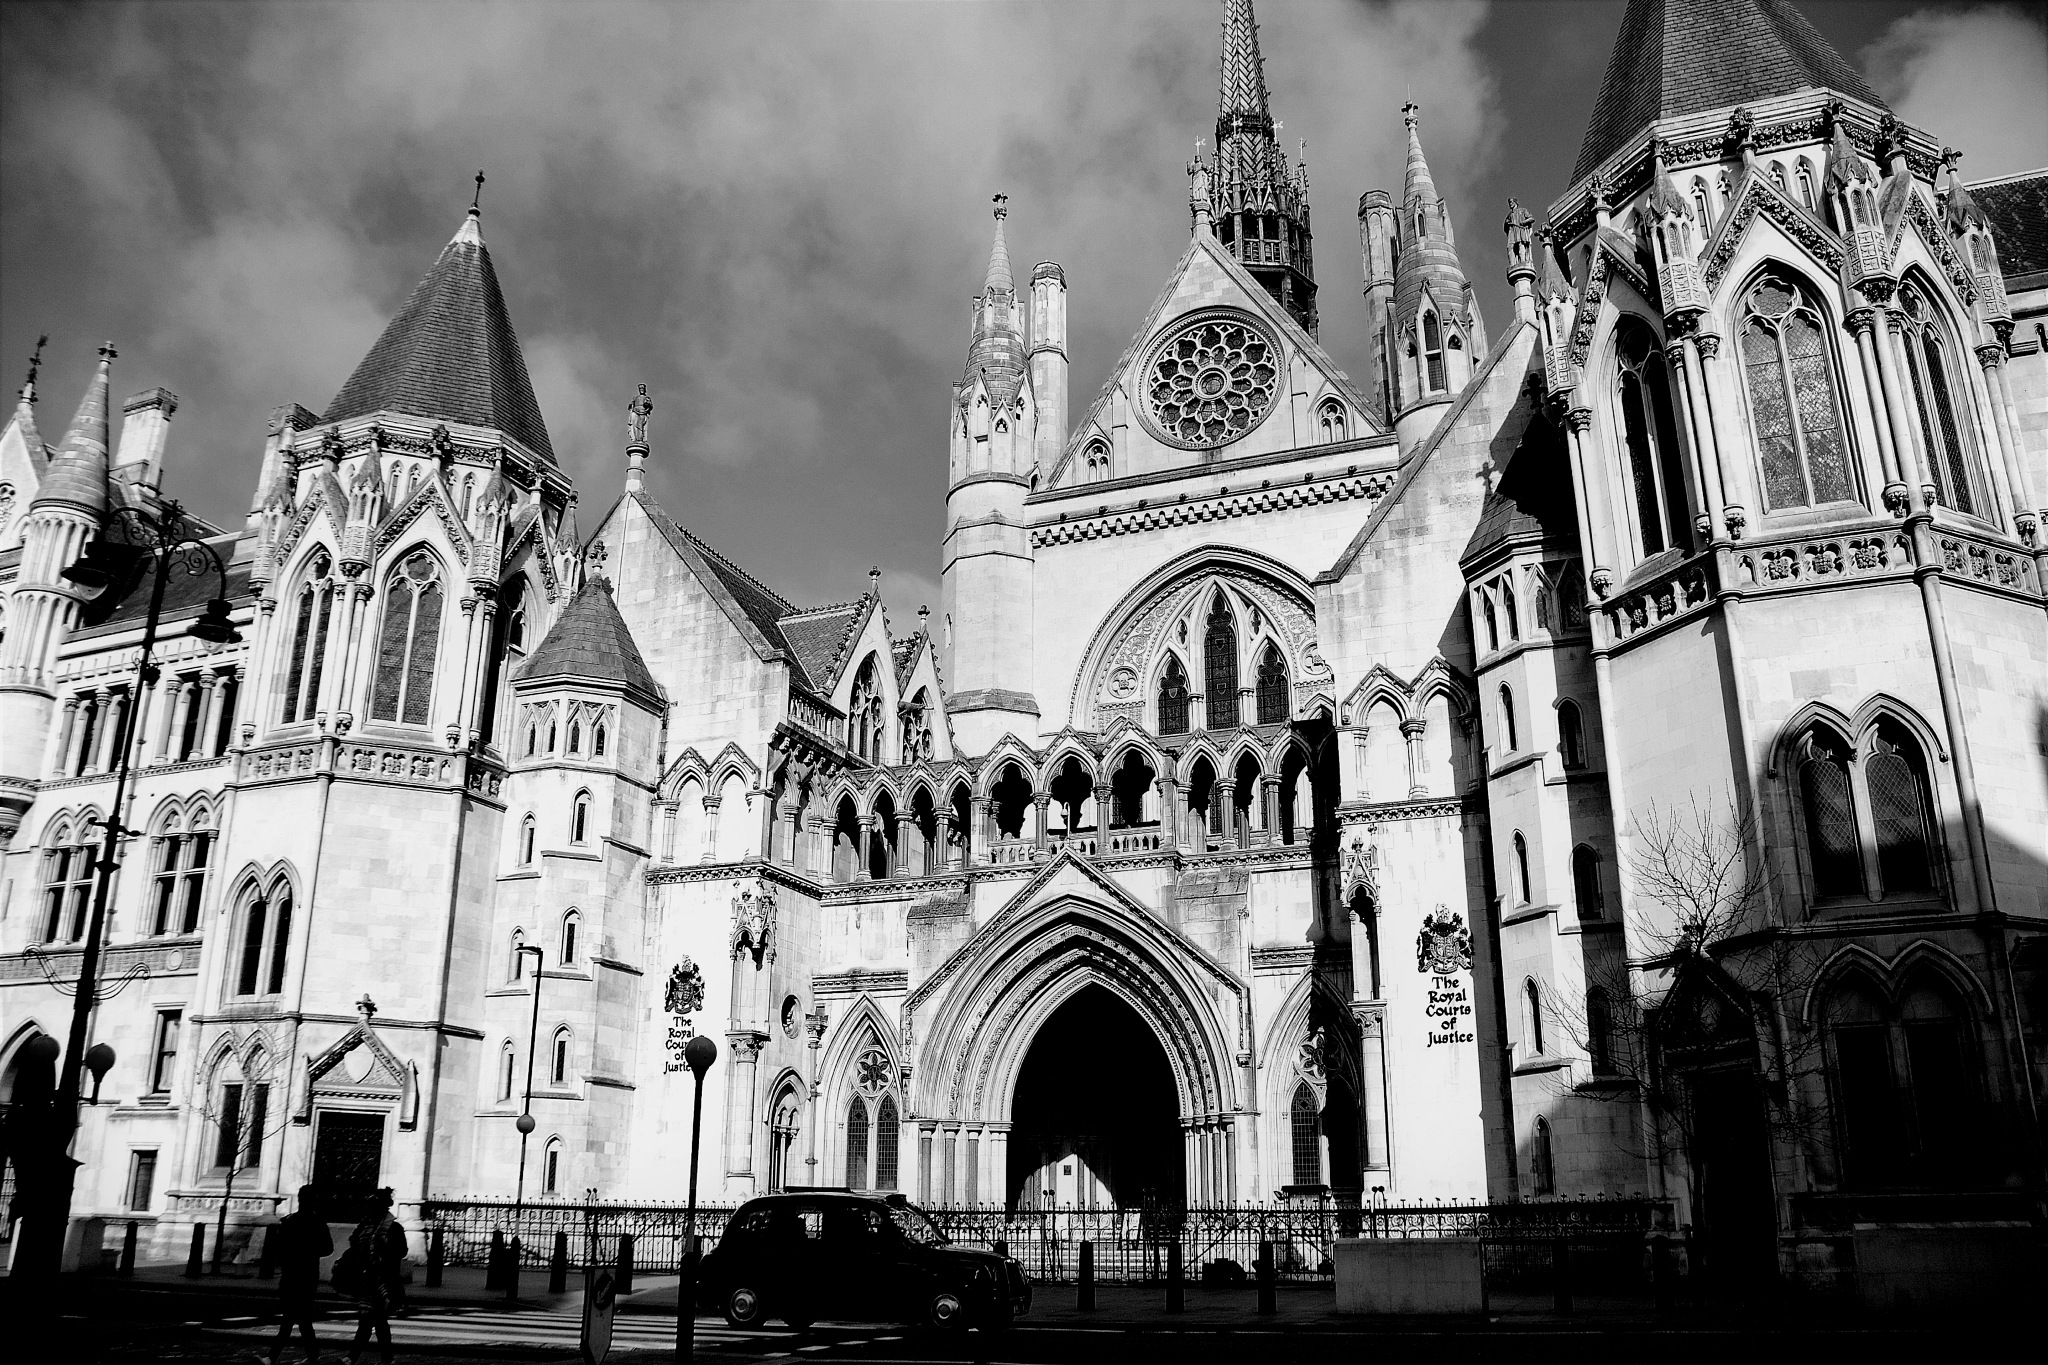 Royal Courts of justice  by cliff.edmundson.3